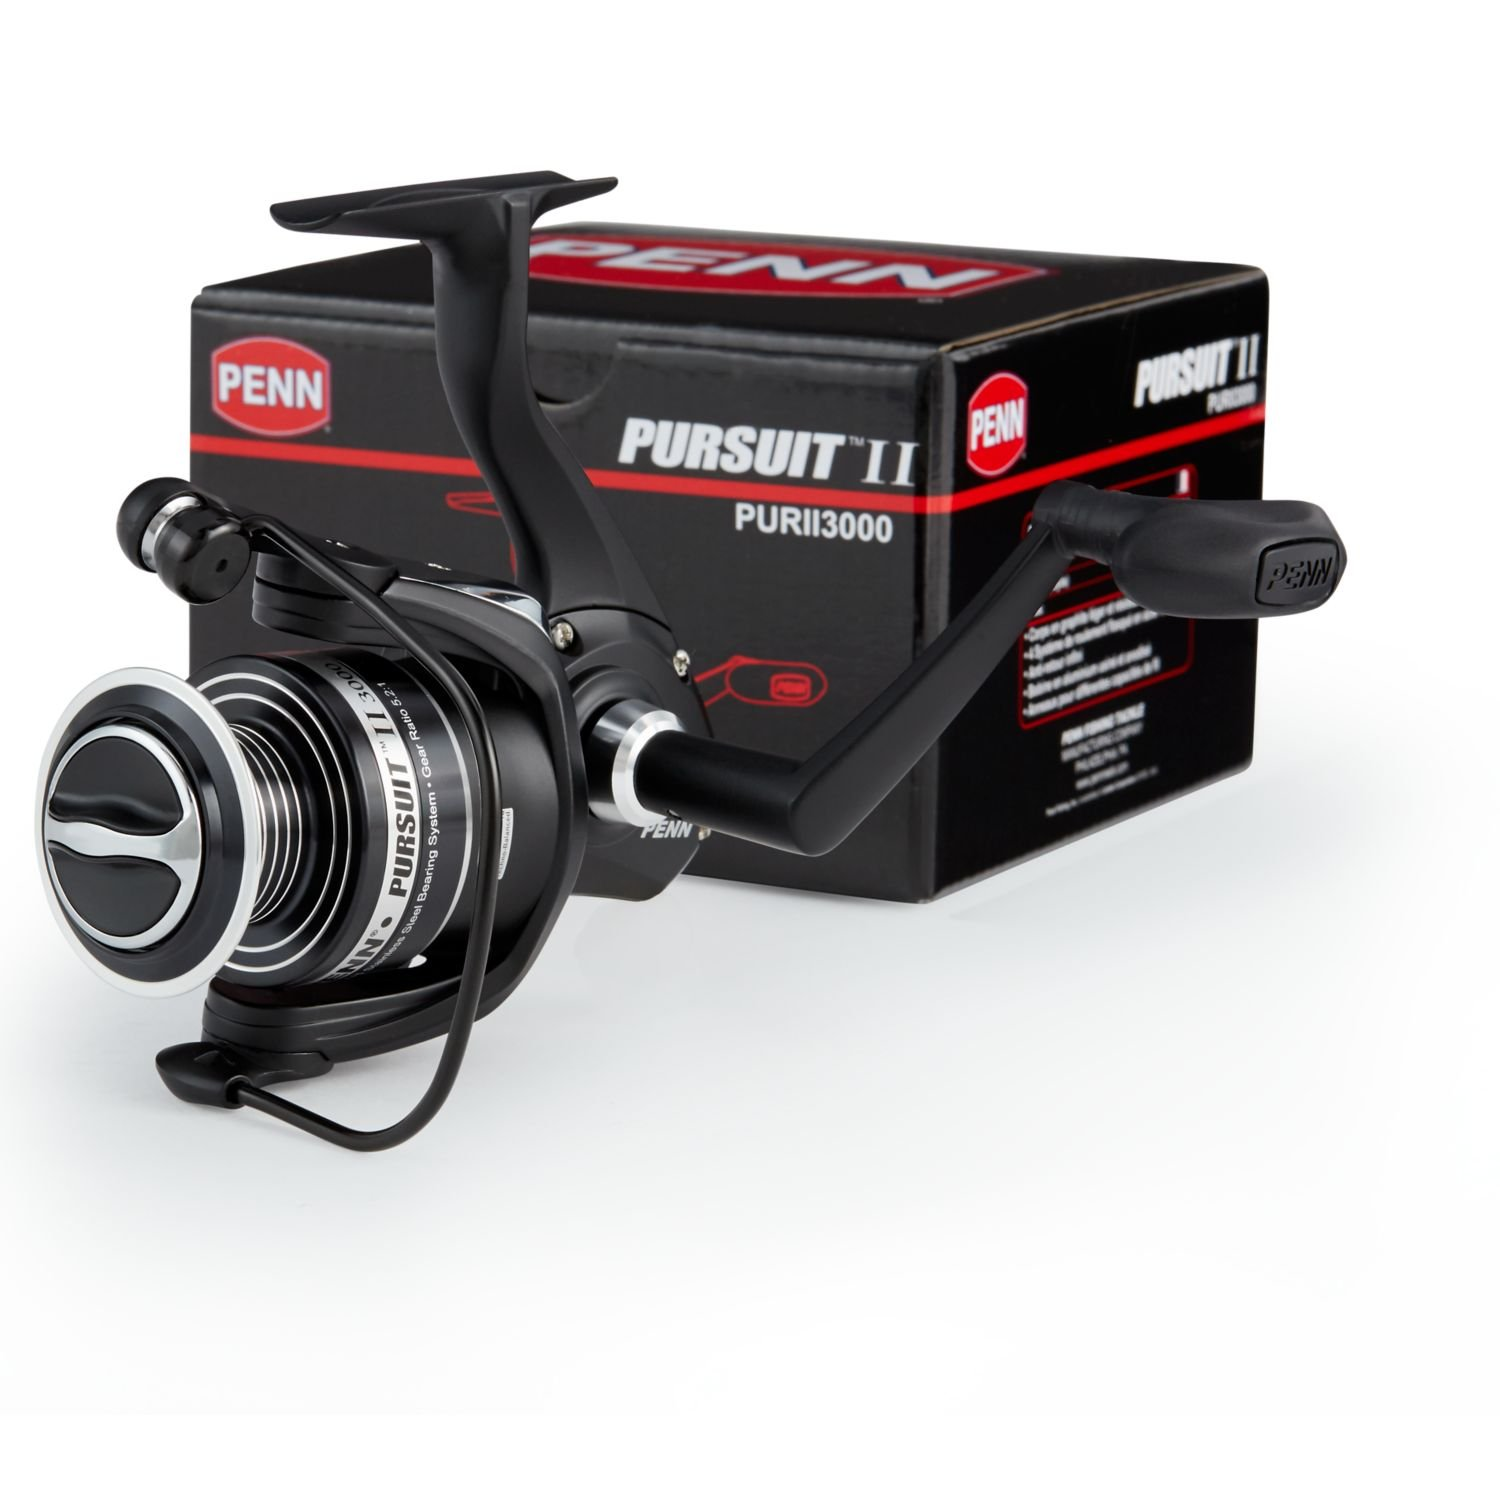 Penn Pursuit II 3000 Spinning Reels by Penn